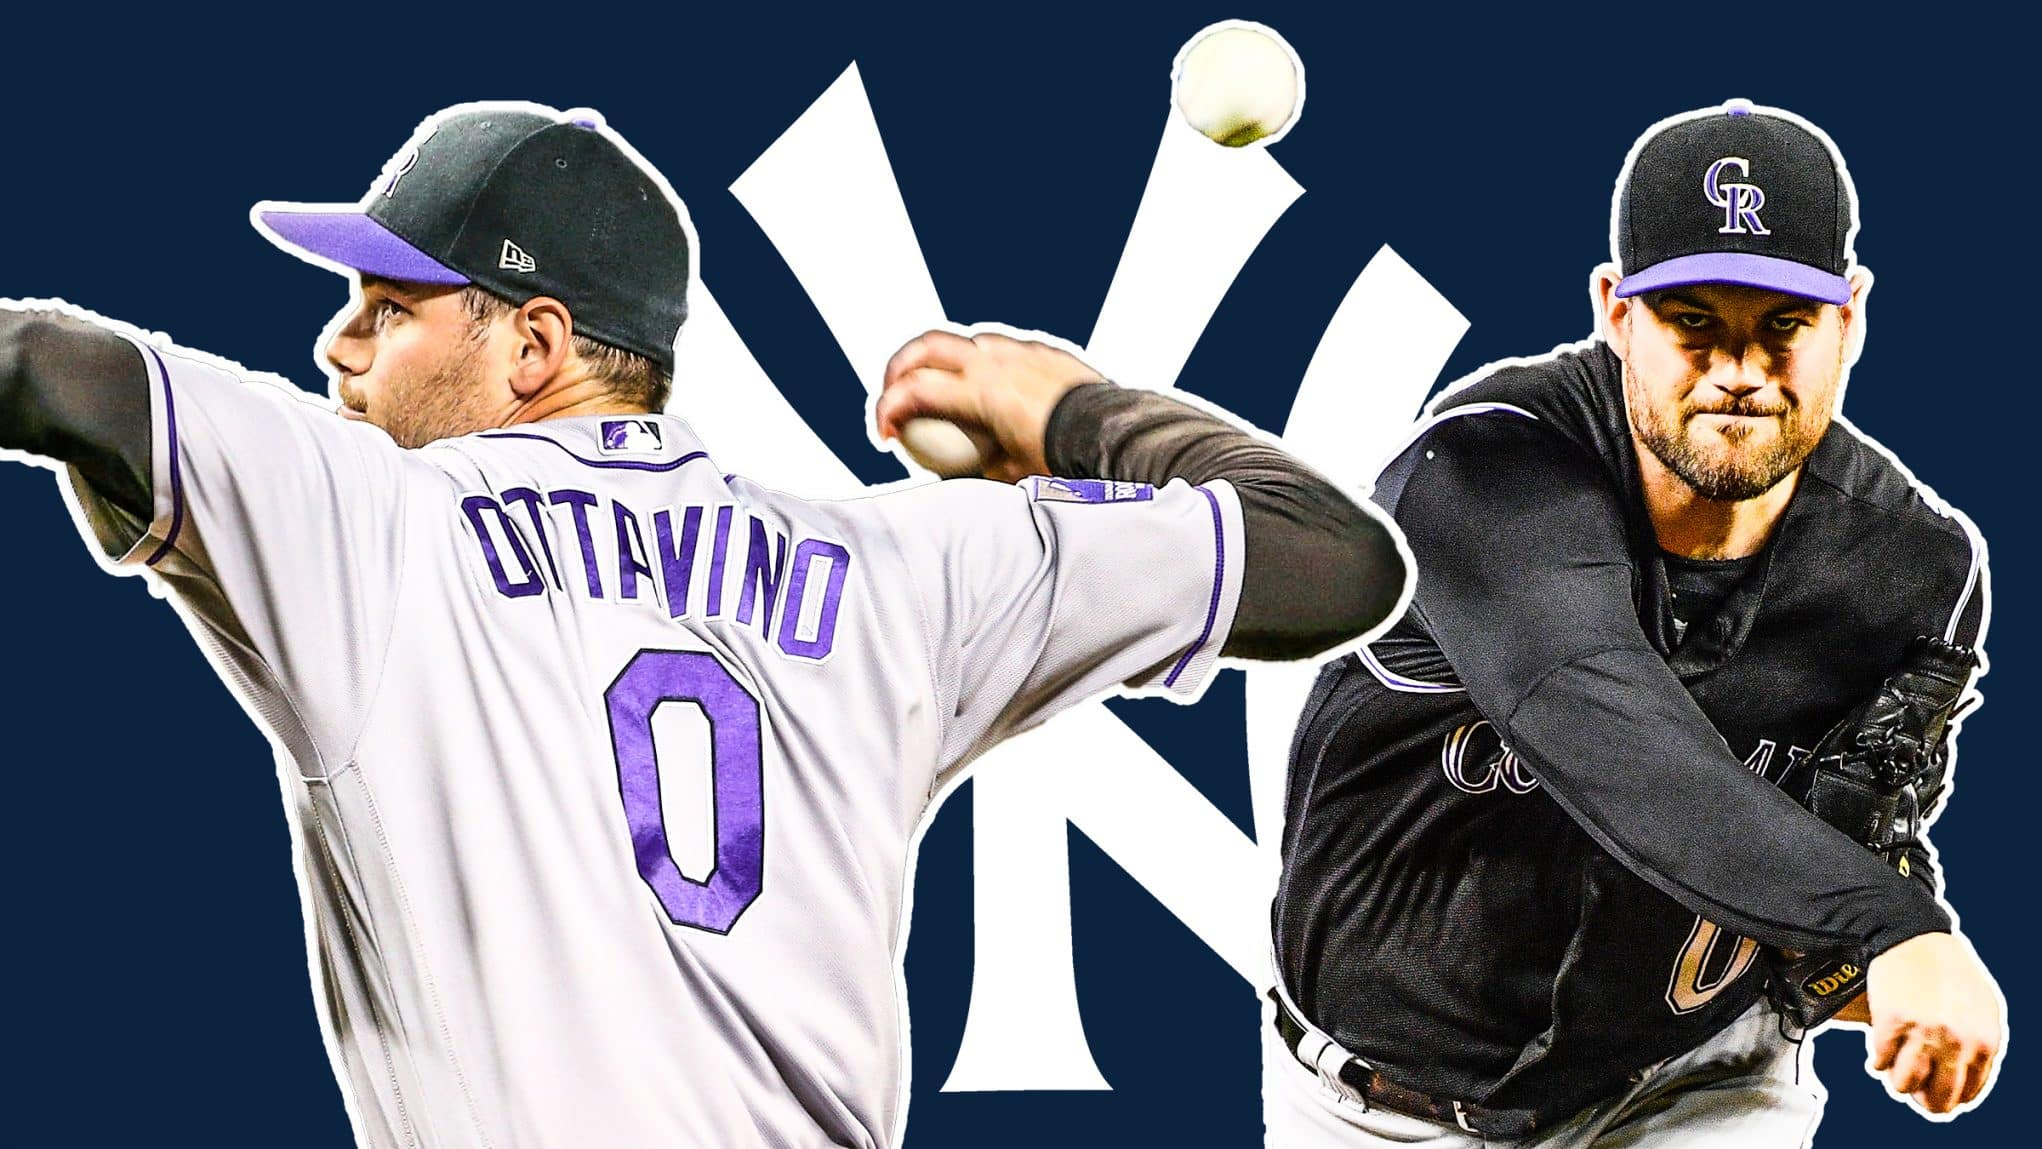 finest selection 8a7b4 07eb2 New York Yankees: How to go all-in on Adam Ottavino